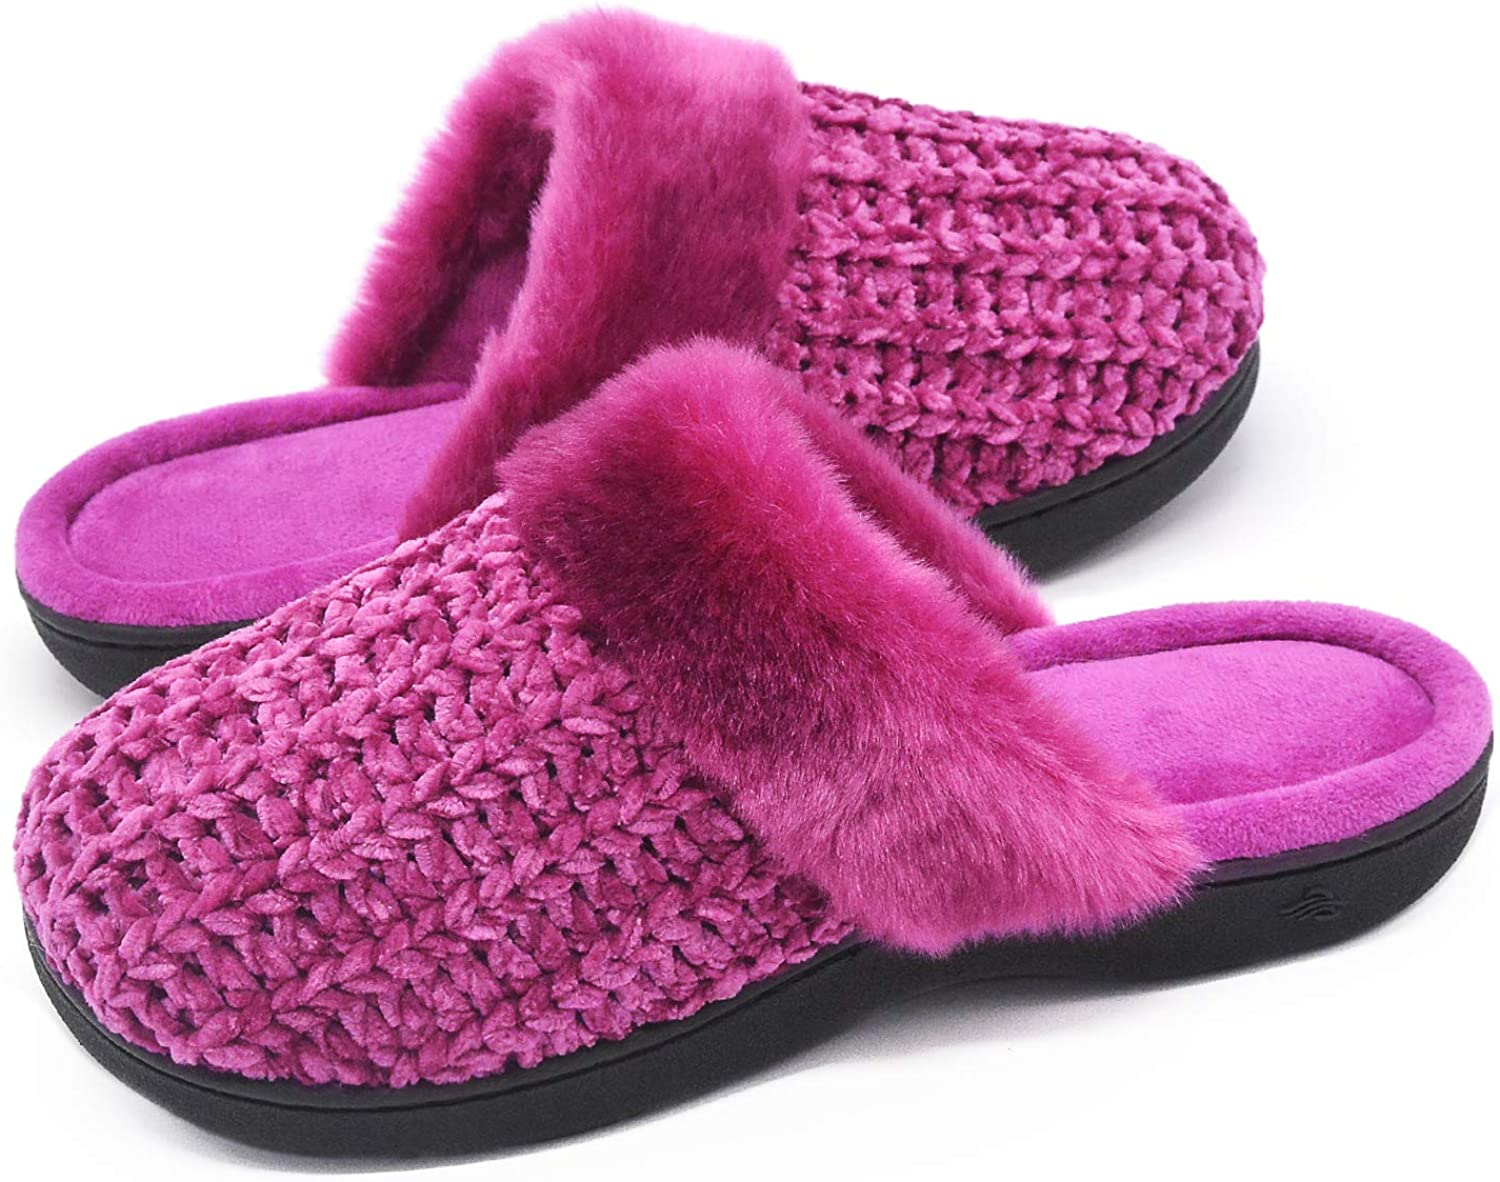 Zigzagger Women's Cute Memory Foam Slippers Indoor Outdoor Comfy Fuzzy Knitted Slip On House shoes